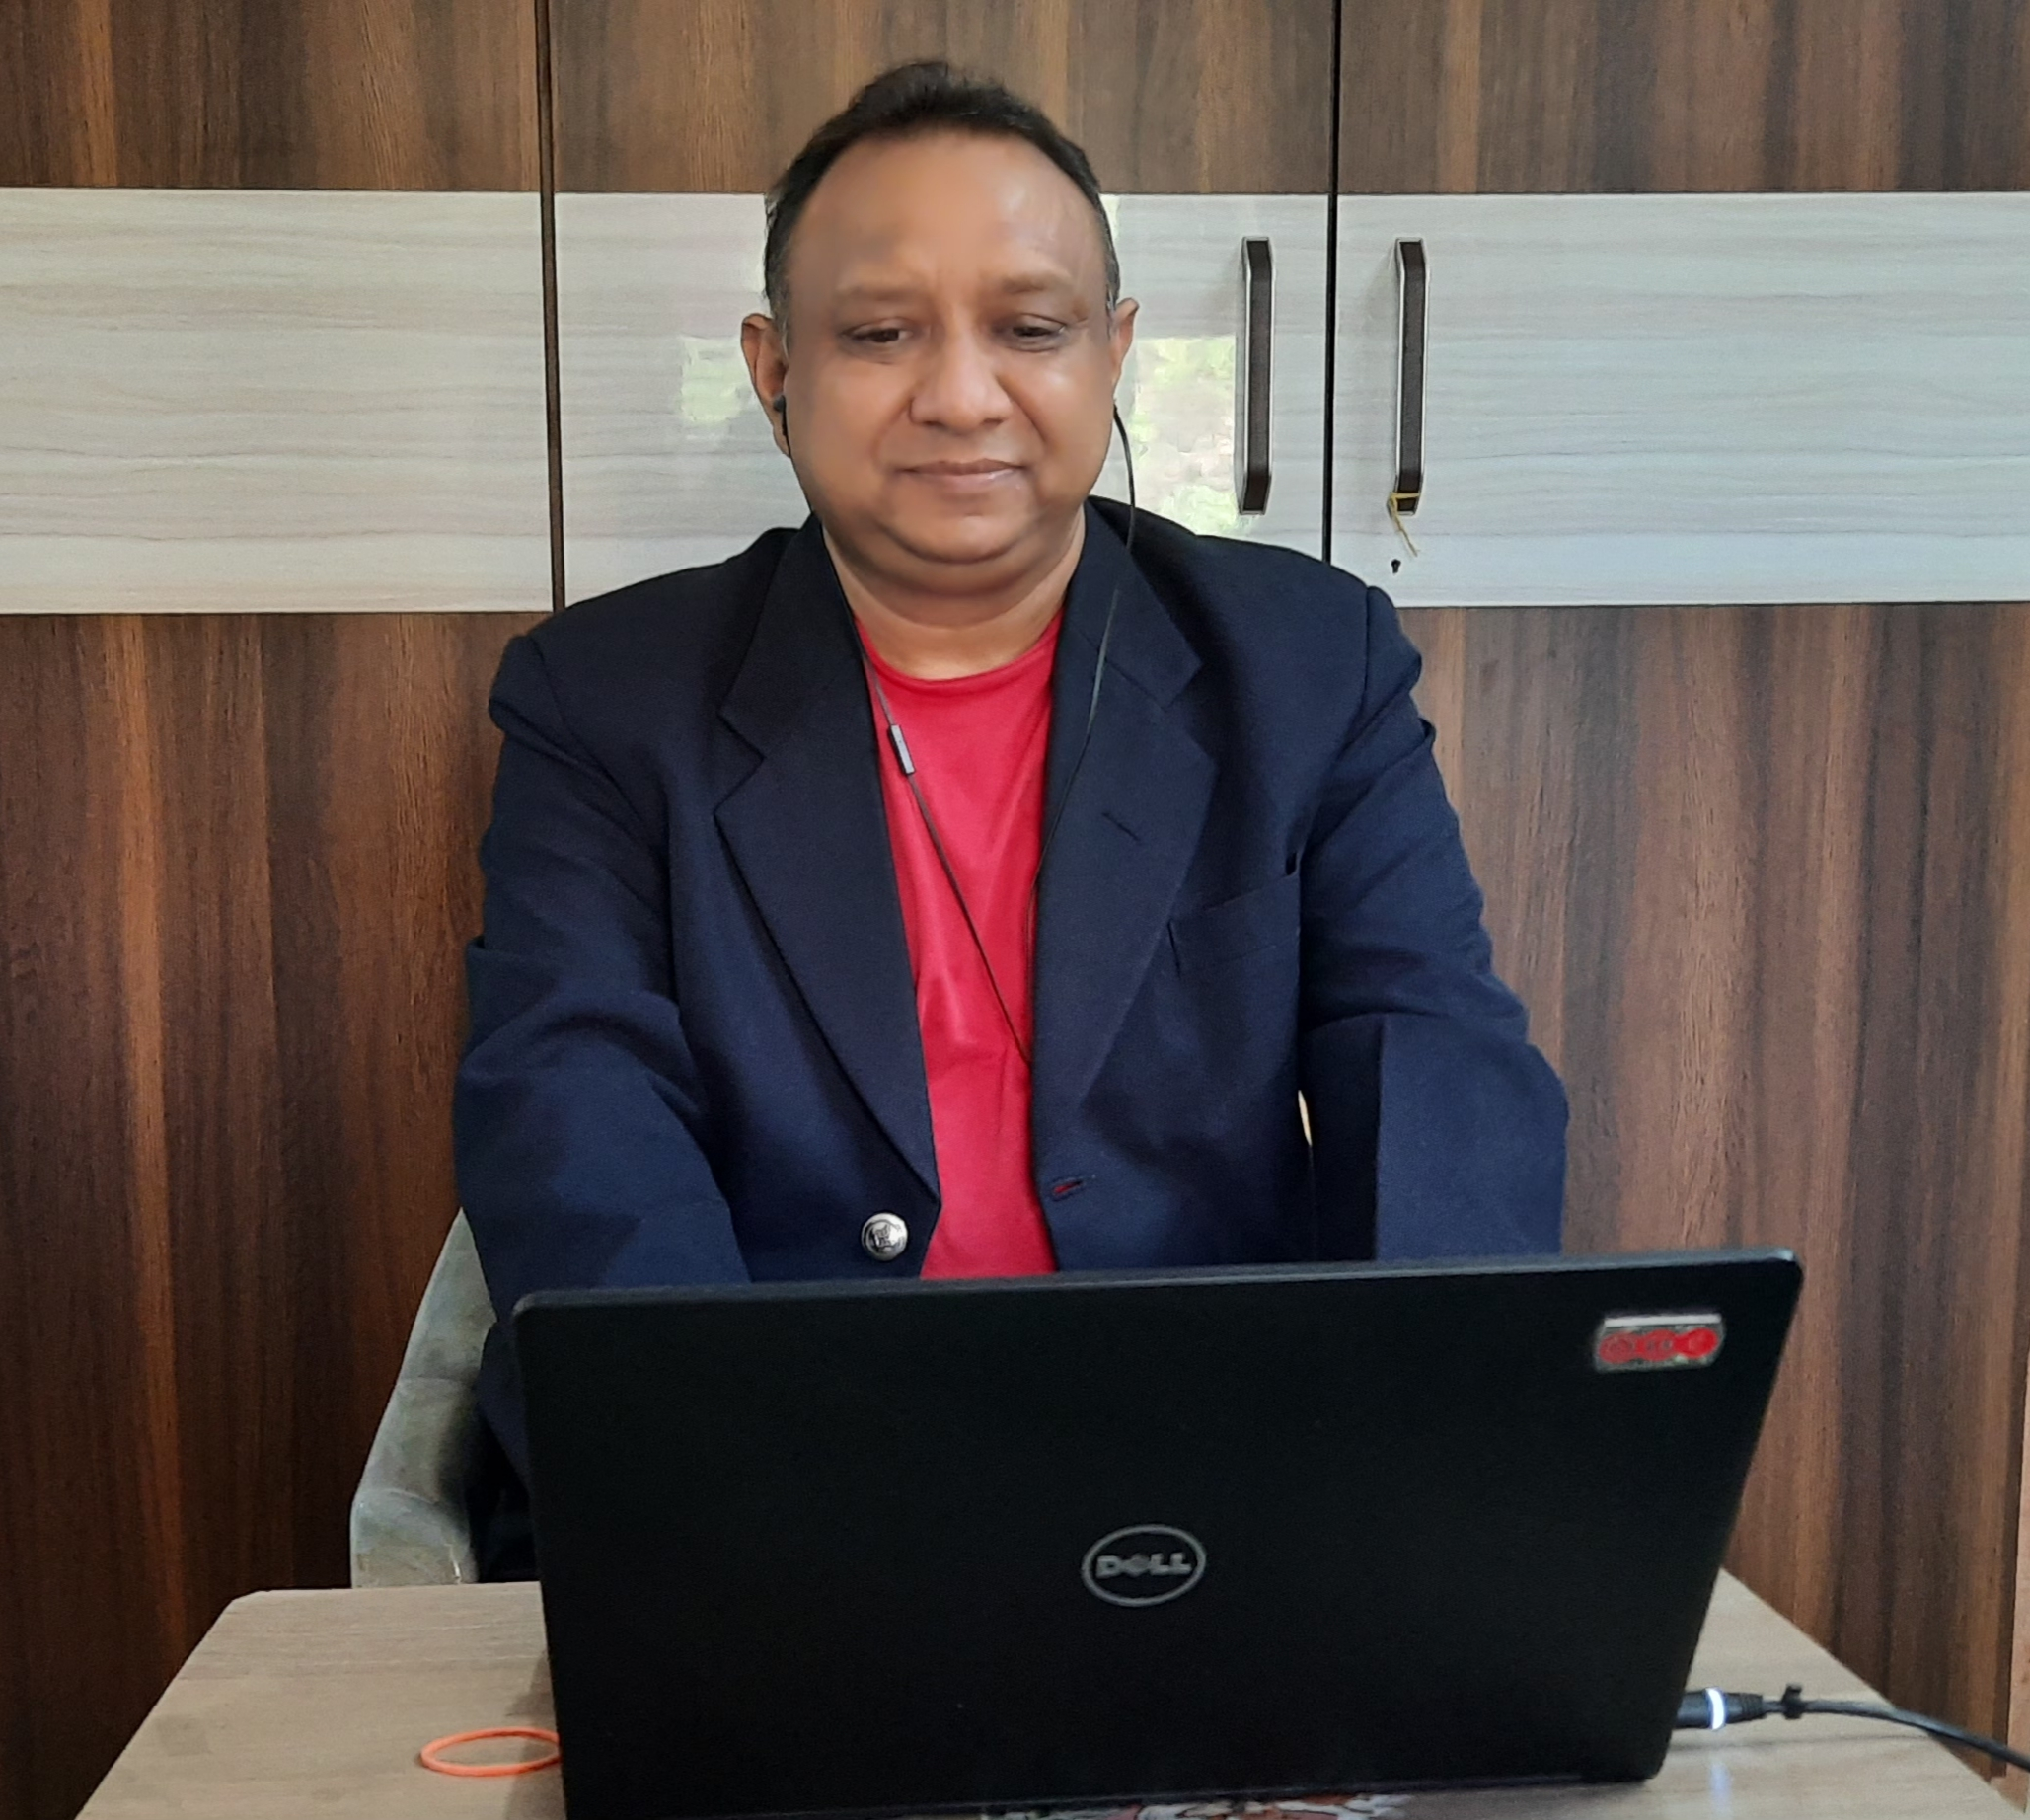 Navin Agrawal from Karl Mayer's agency A.T.E. in India attending the first Karl Mayer Academy webinar.